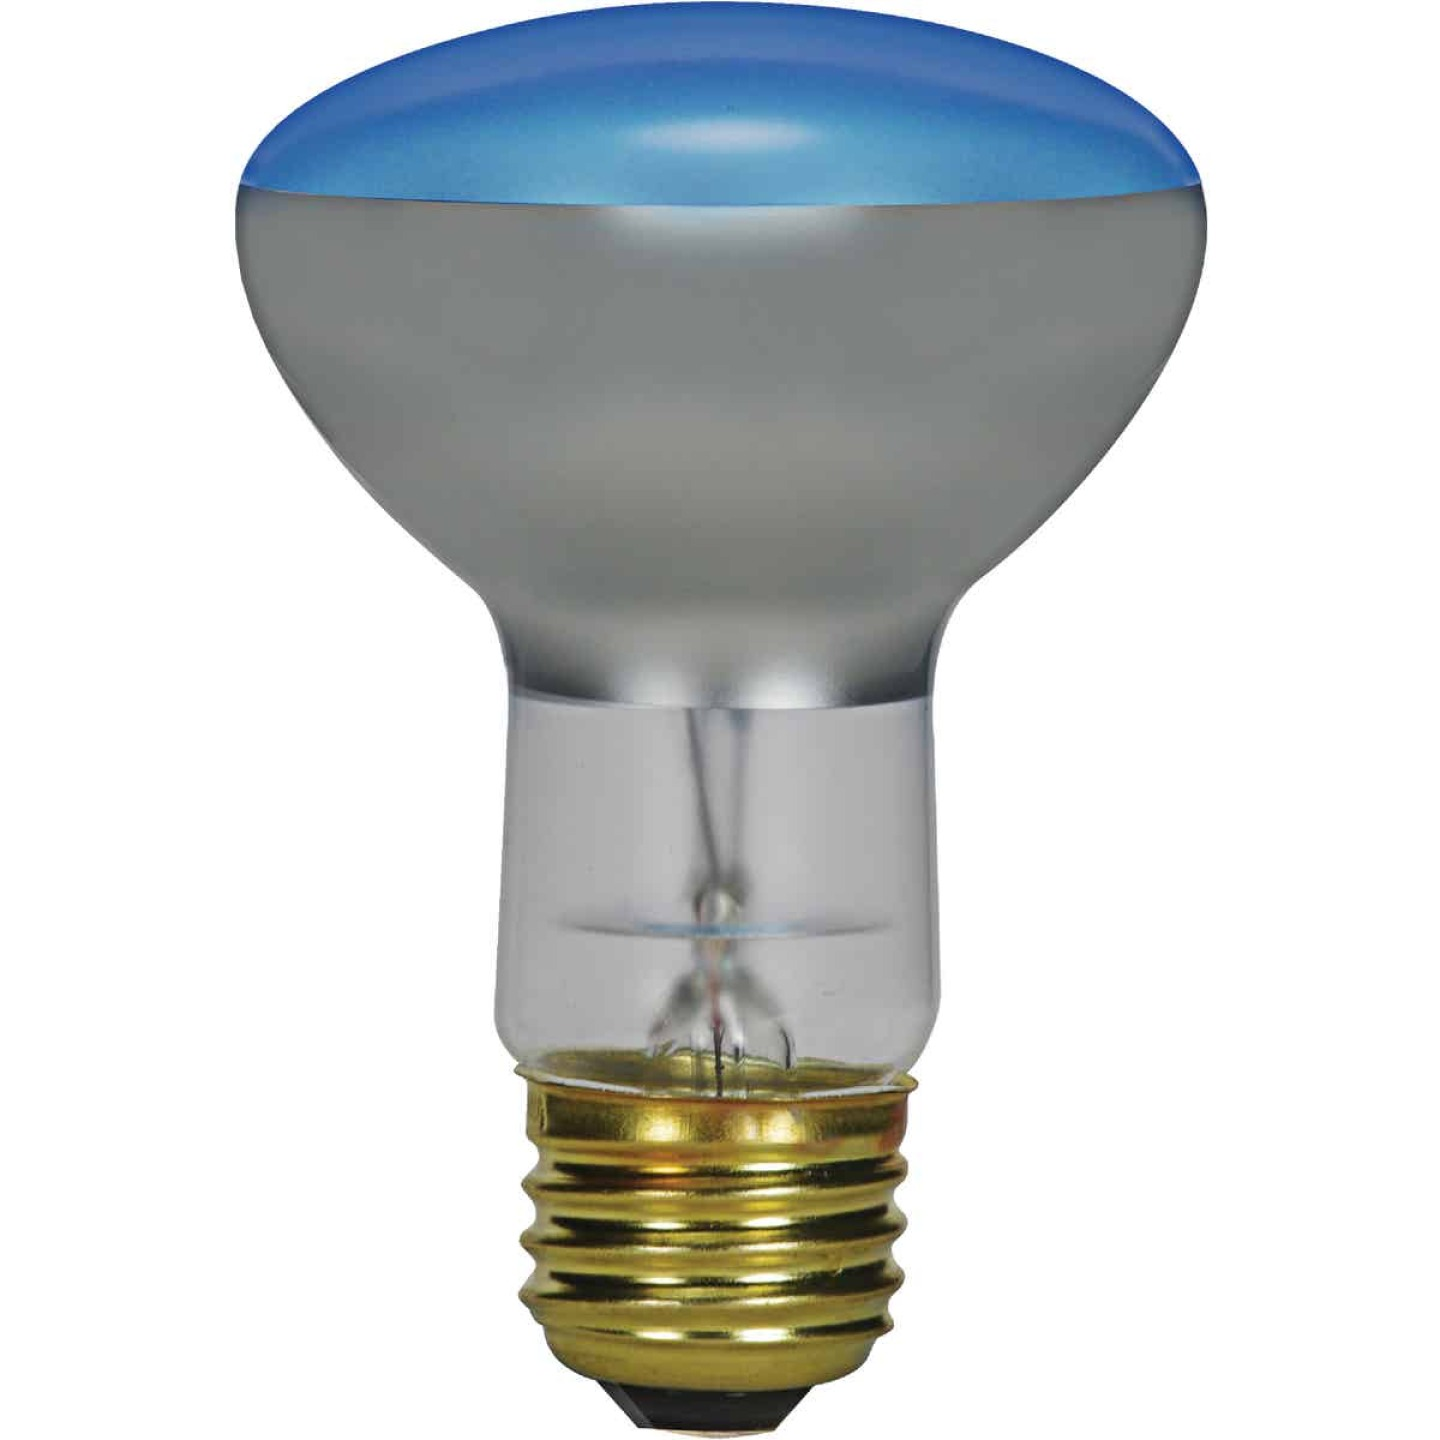 Satco 50W Frosted Medium Base R20 Incandescent Plant Light Bulb Image 1